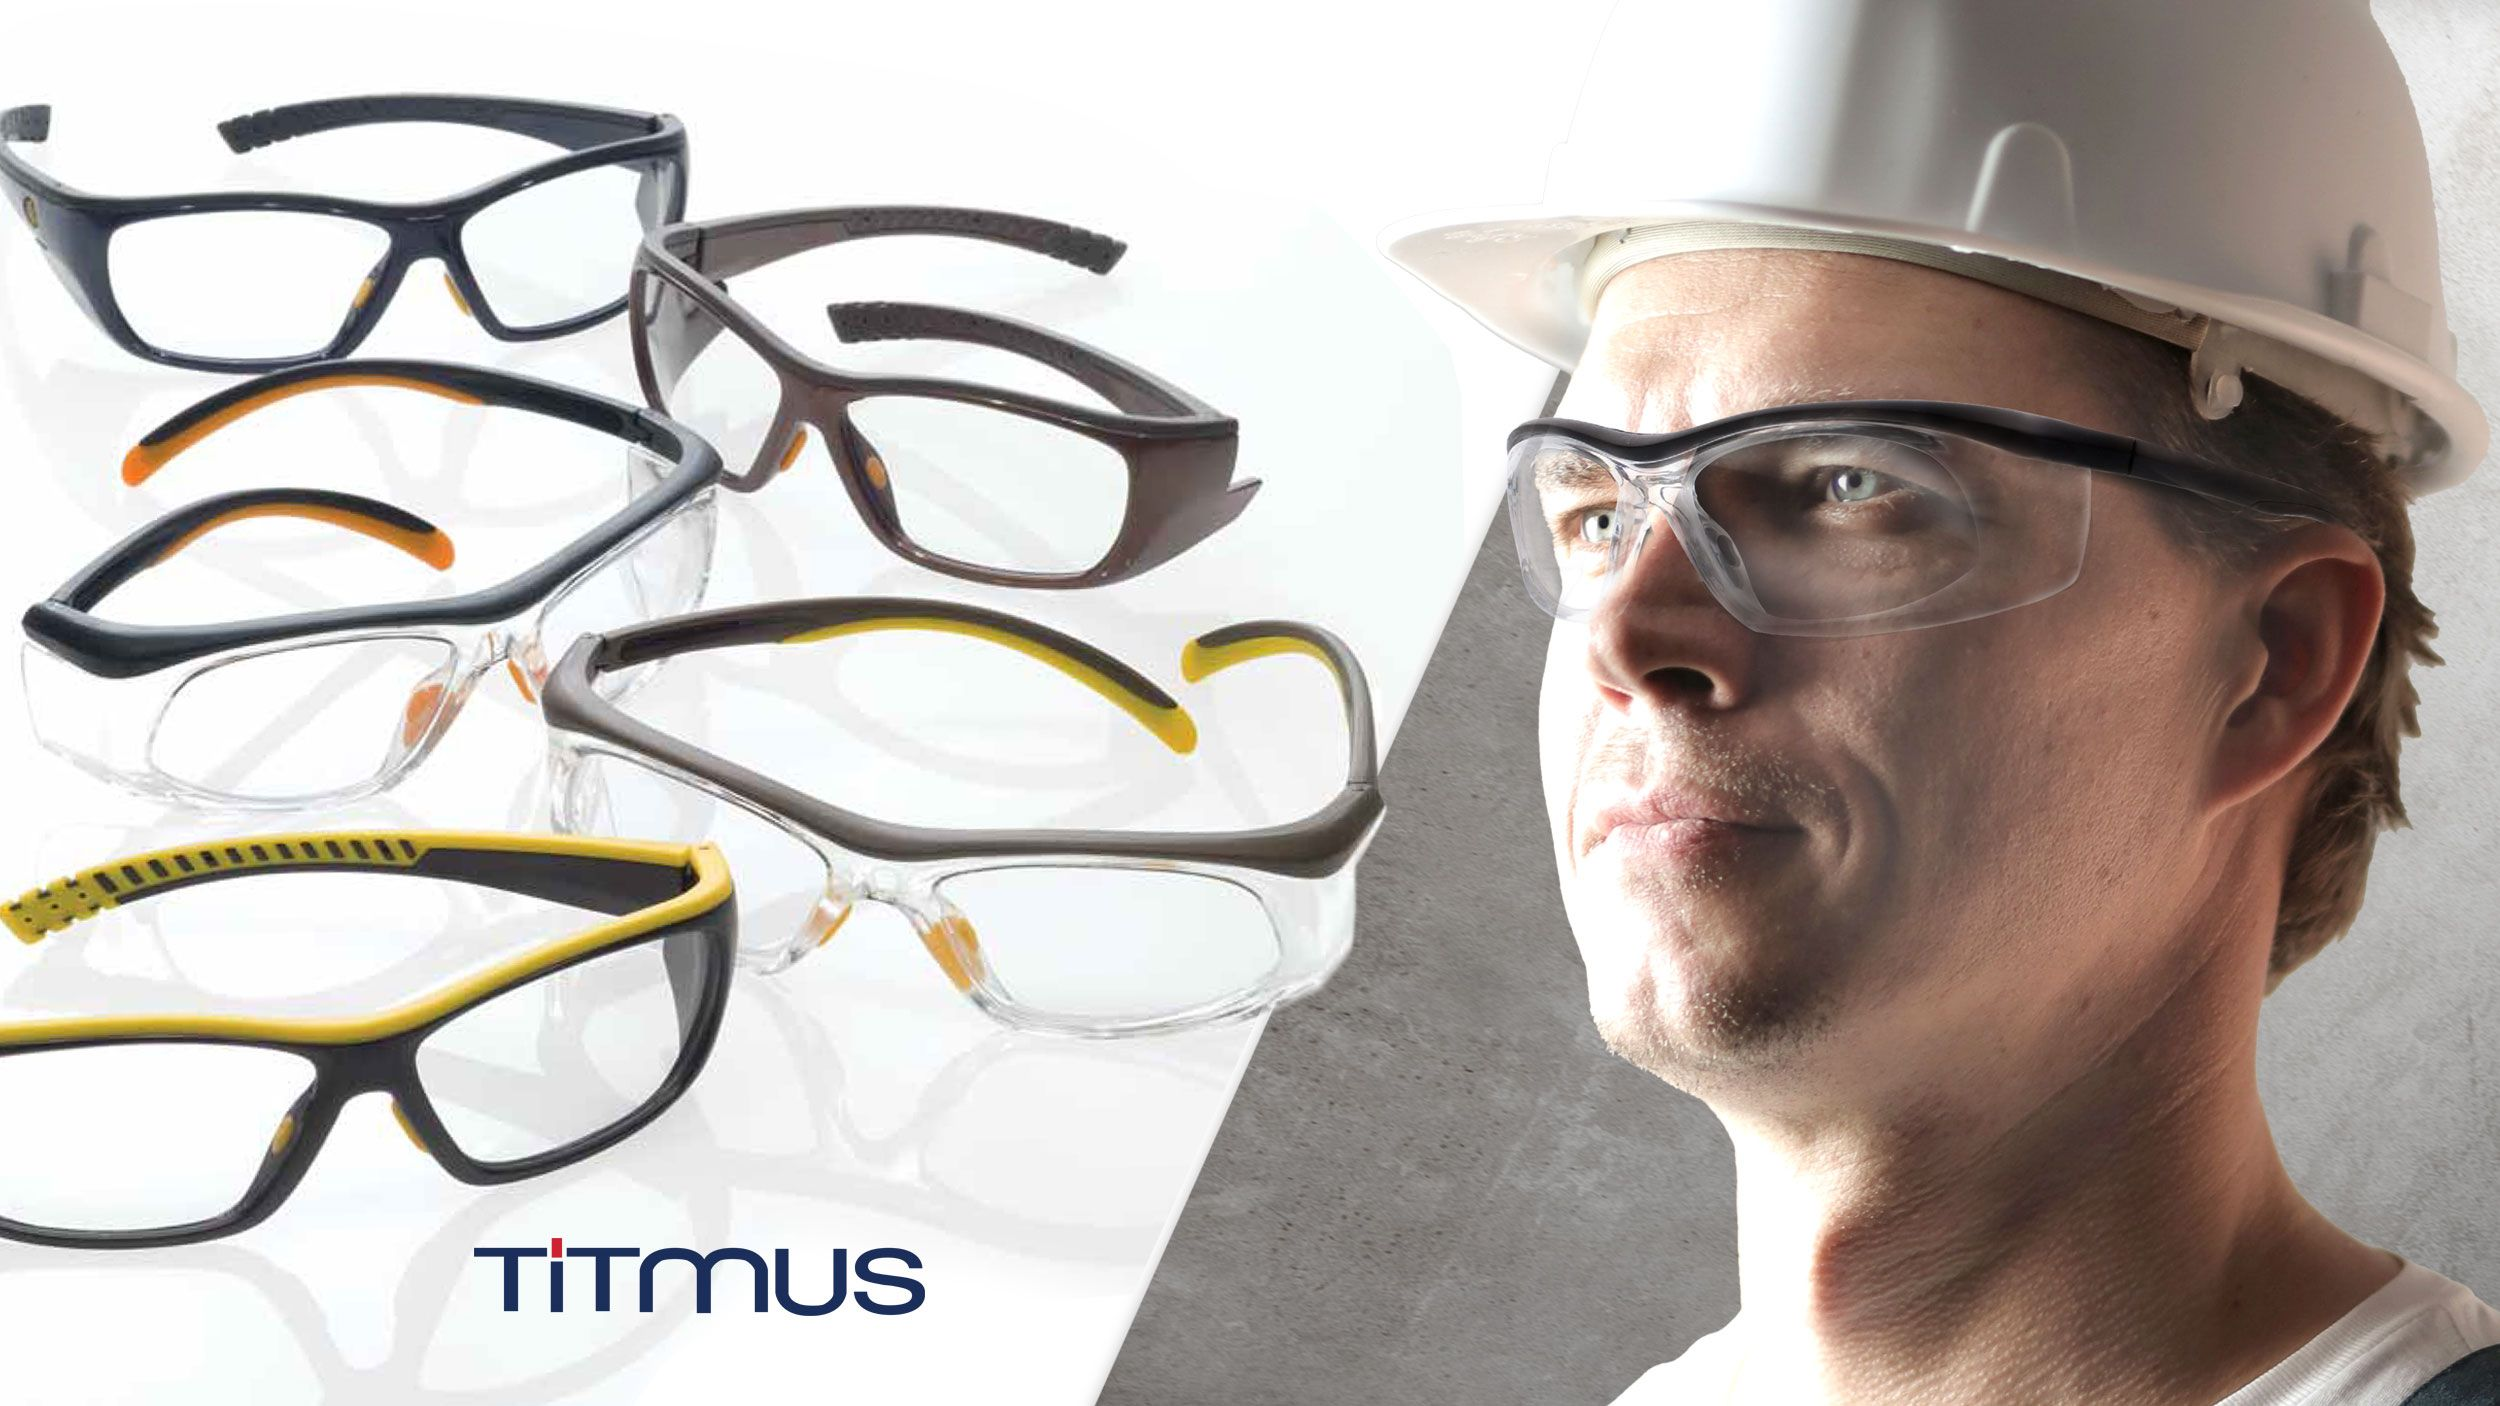 TITMUS SAFETY GLASSES SELECTION GUIDE HEADER